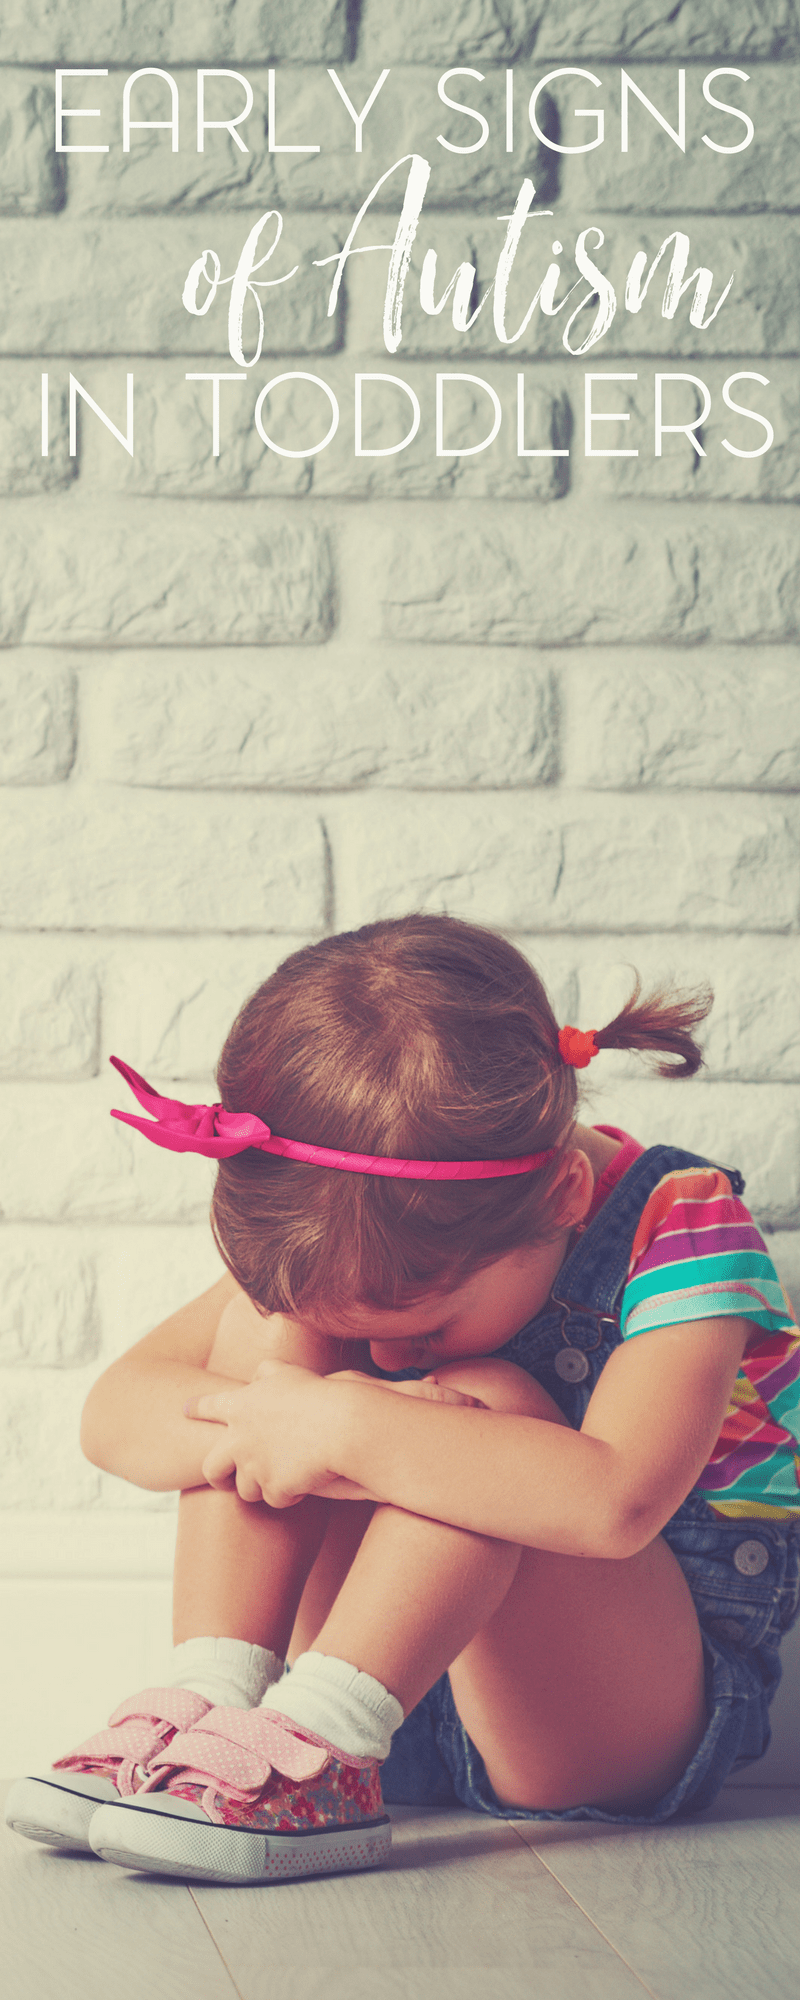 How to Recognize Signs of Autism in Toddlers 6